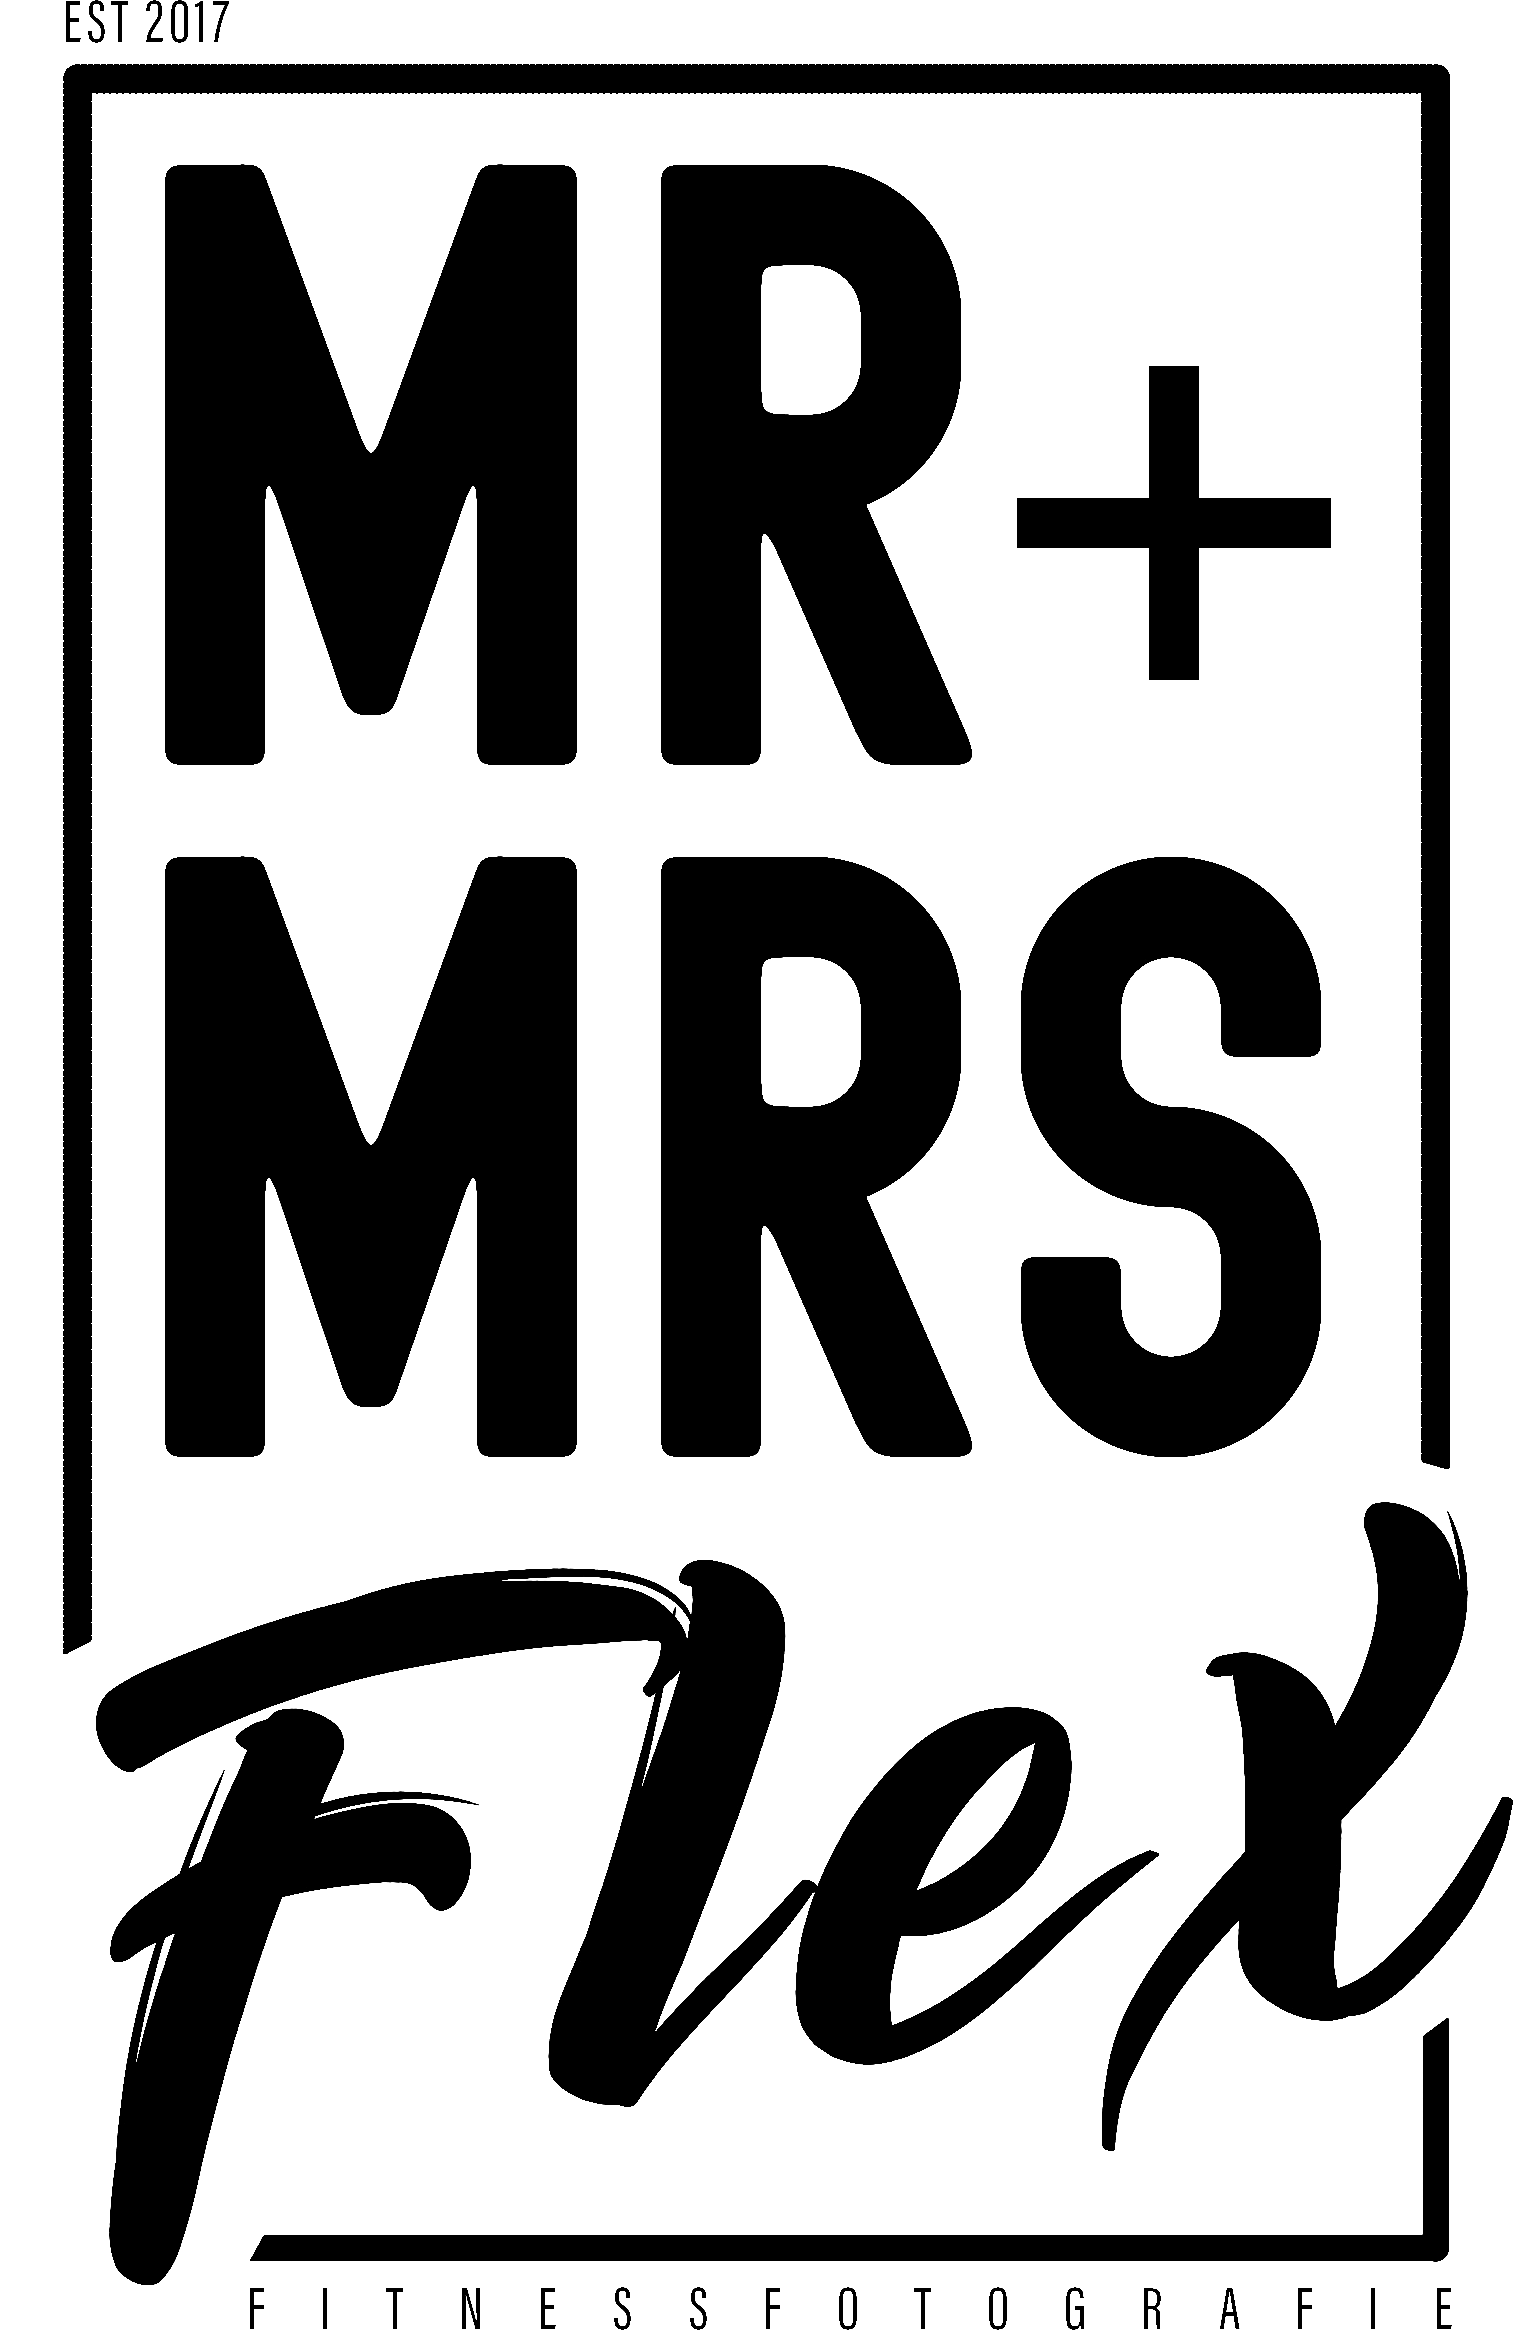 Mr. + Mrs. Flex